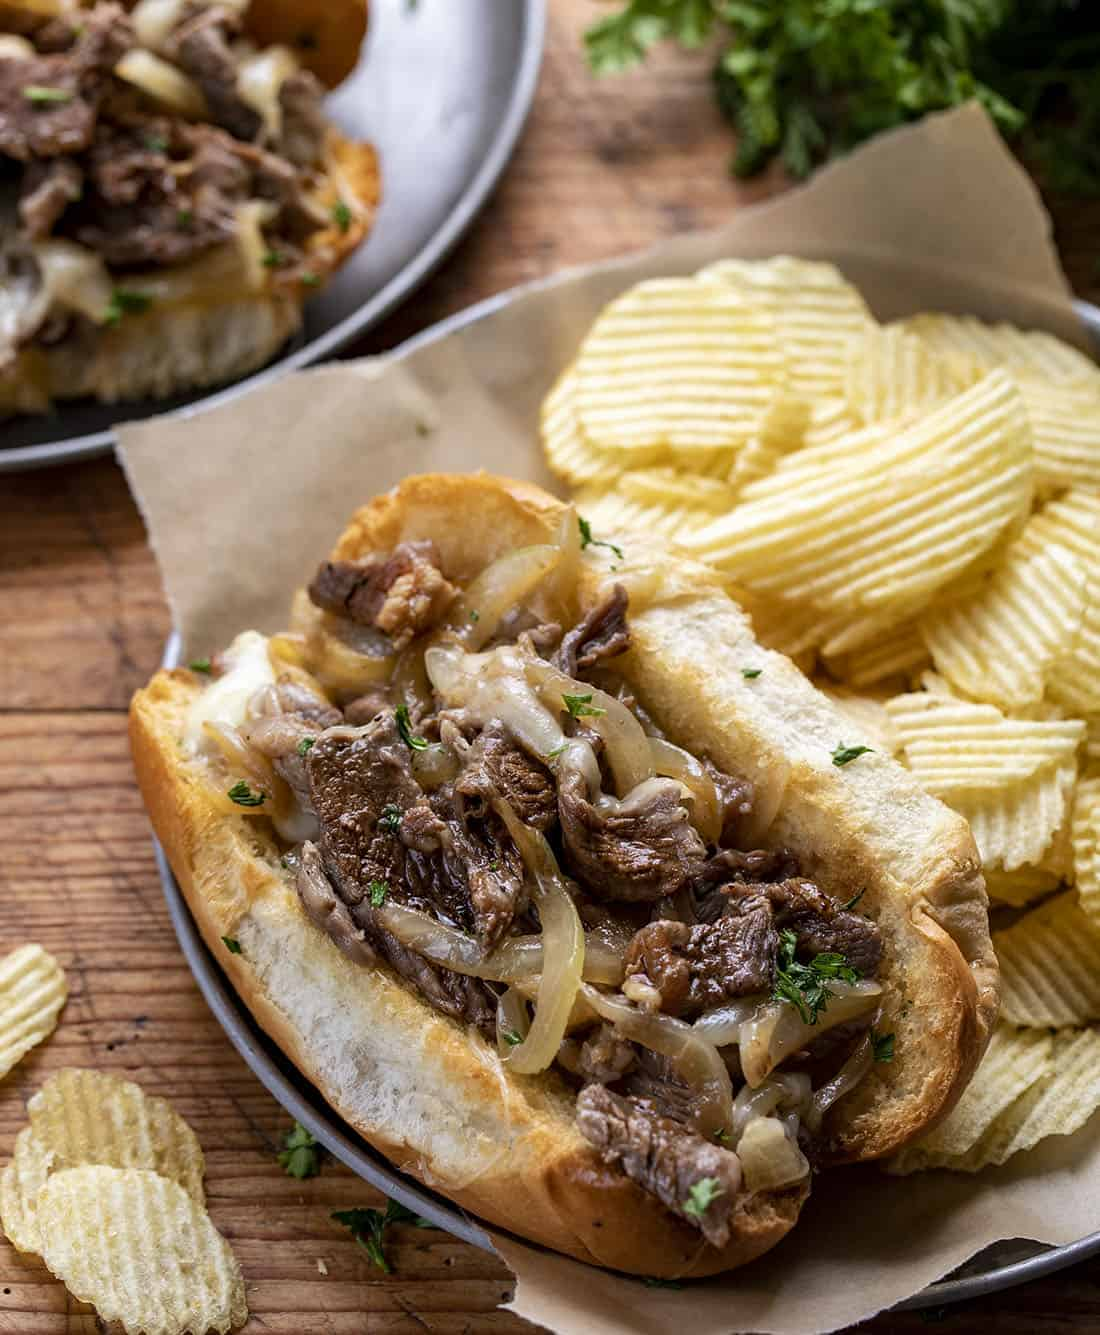 Philly Cheesesteak Sandwich on a Plate